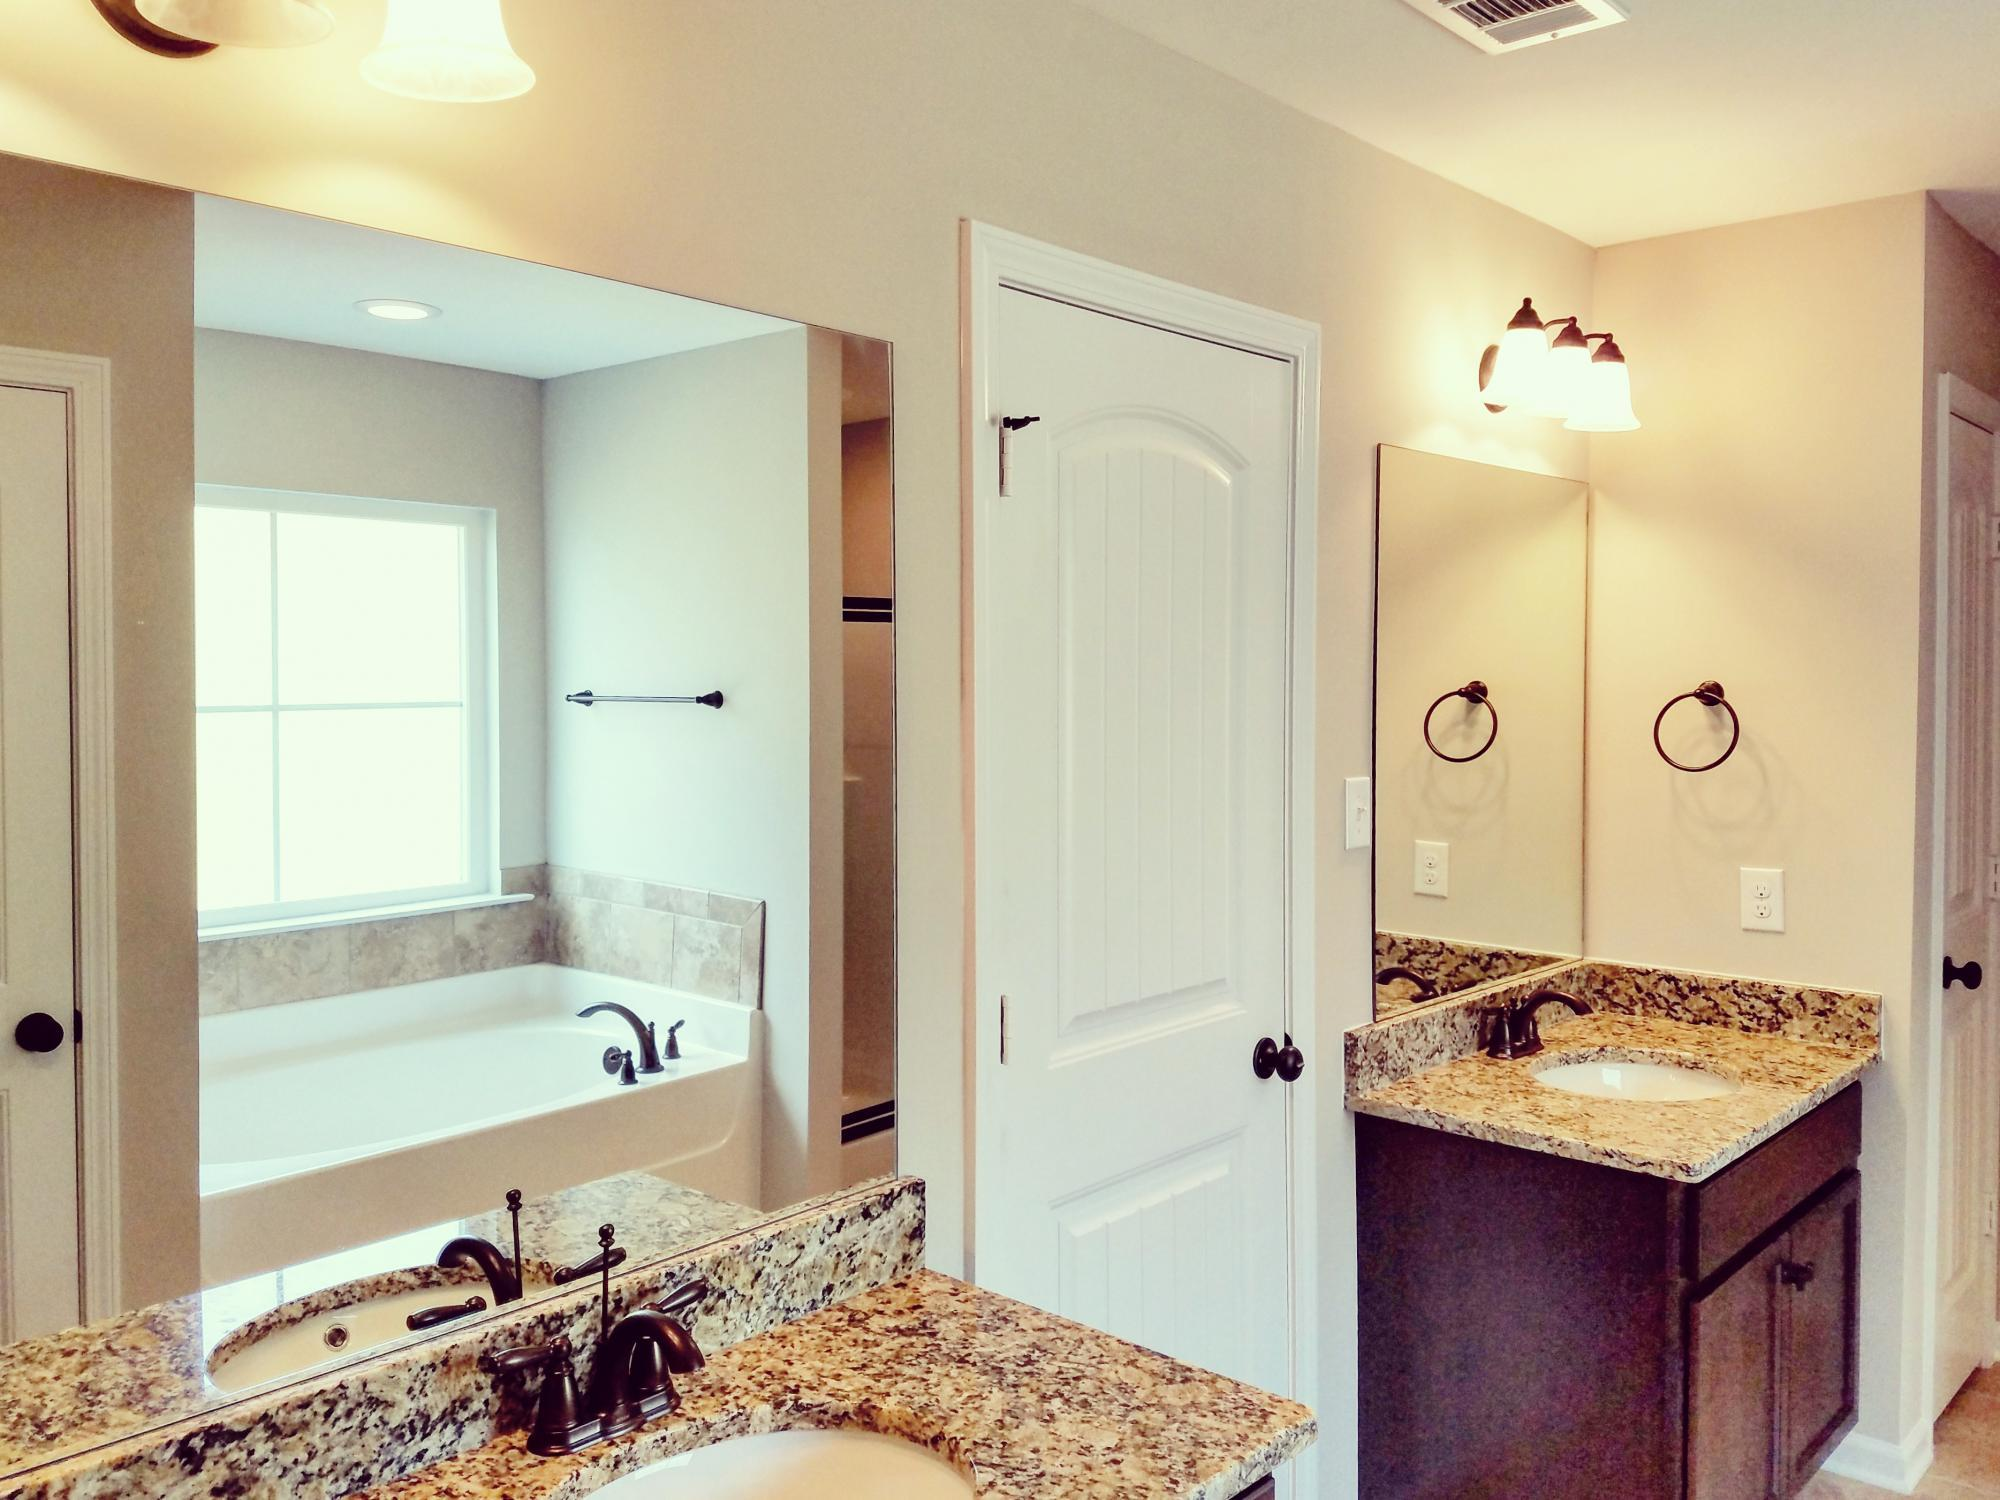 Bathroom featured in the Crawford By Konter Quality Homes in Savannah, GA